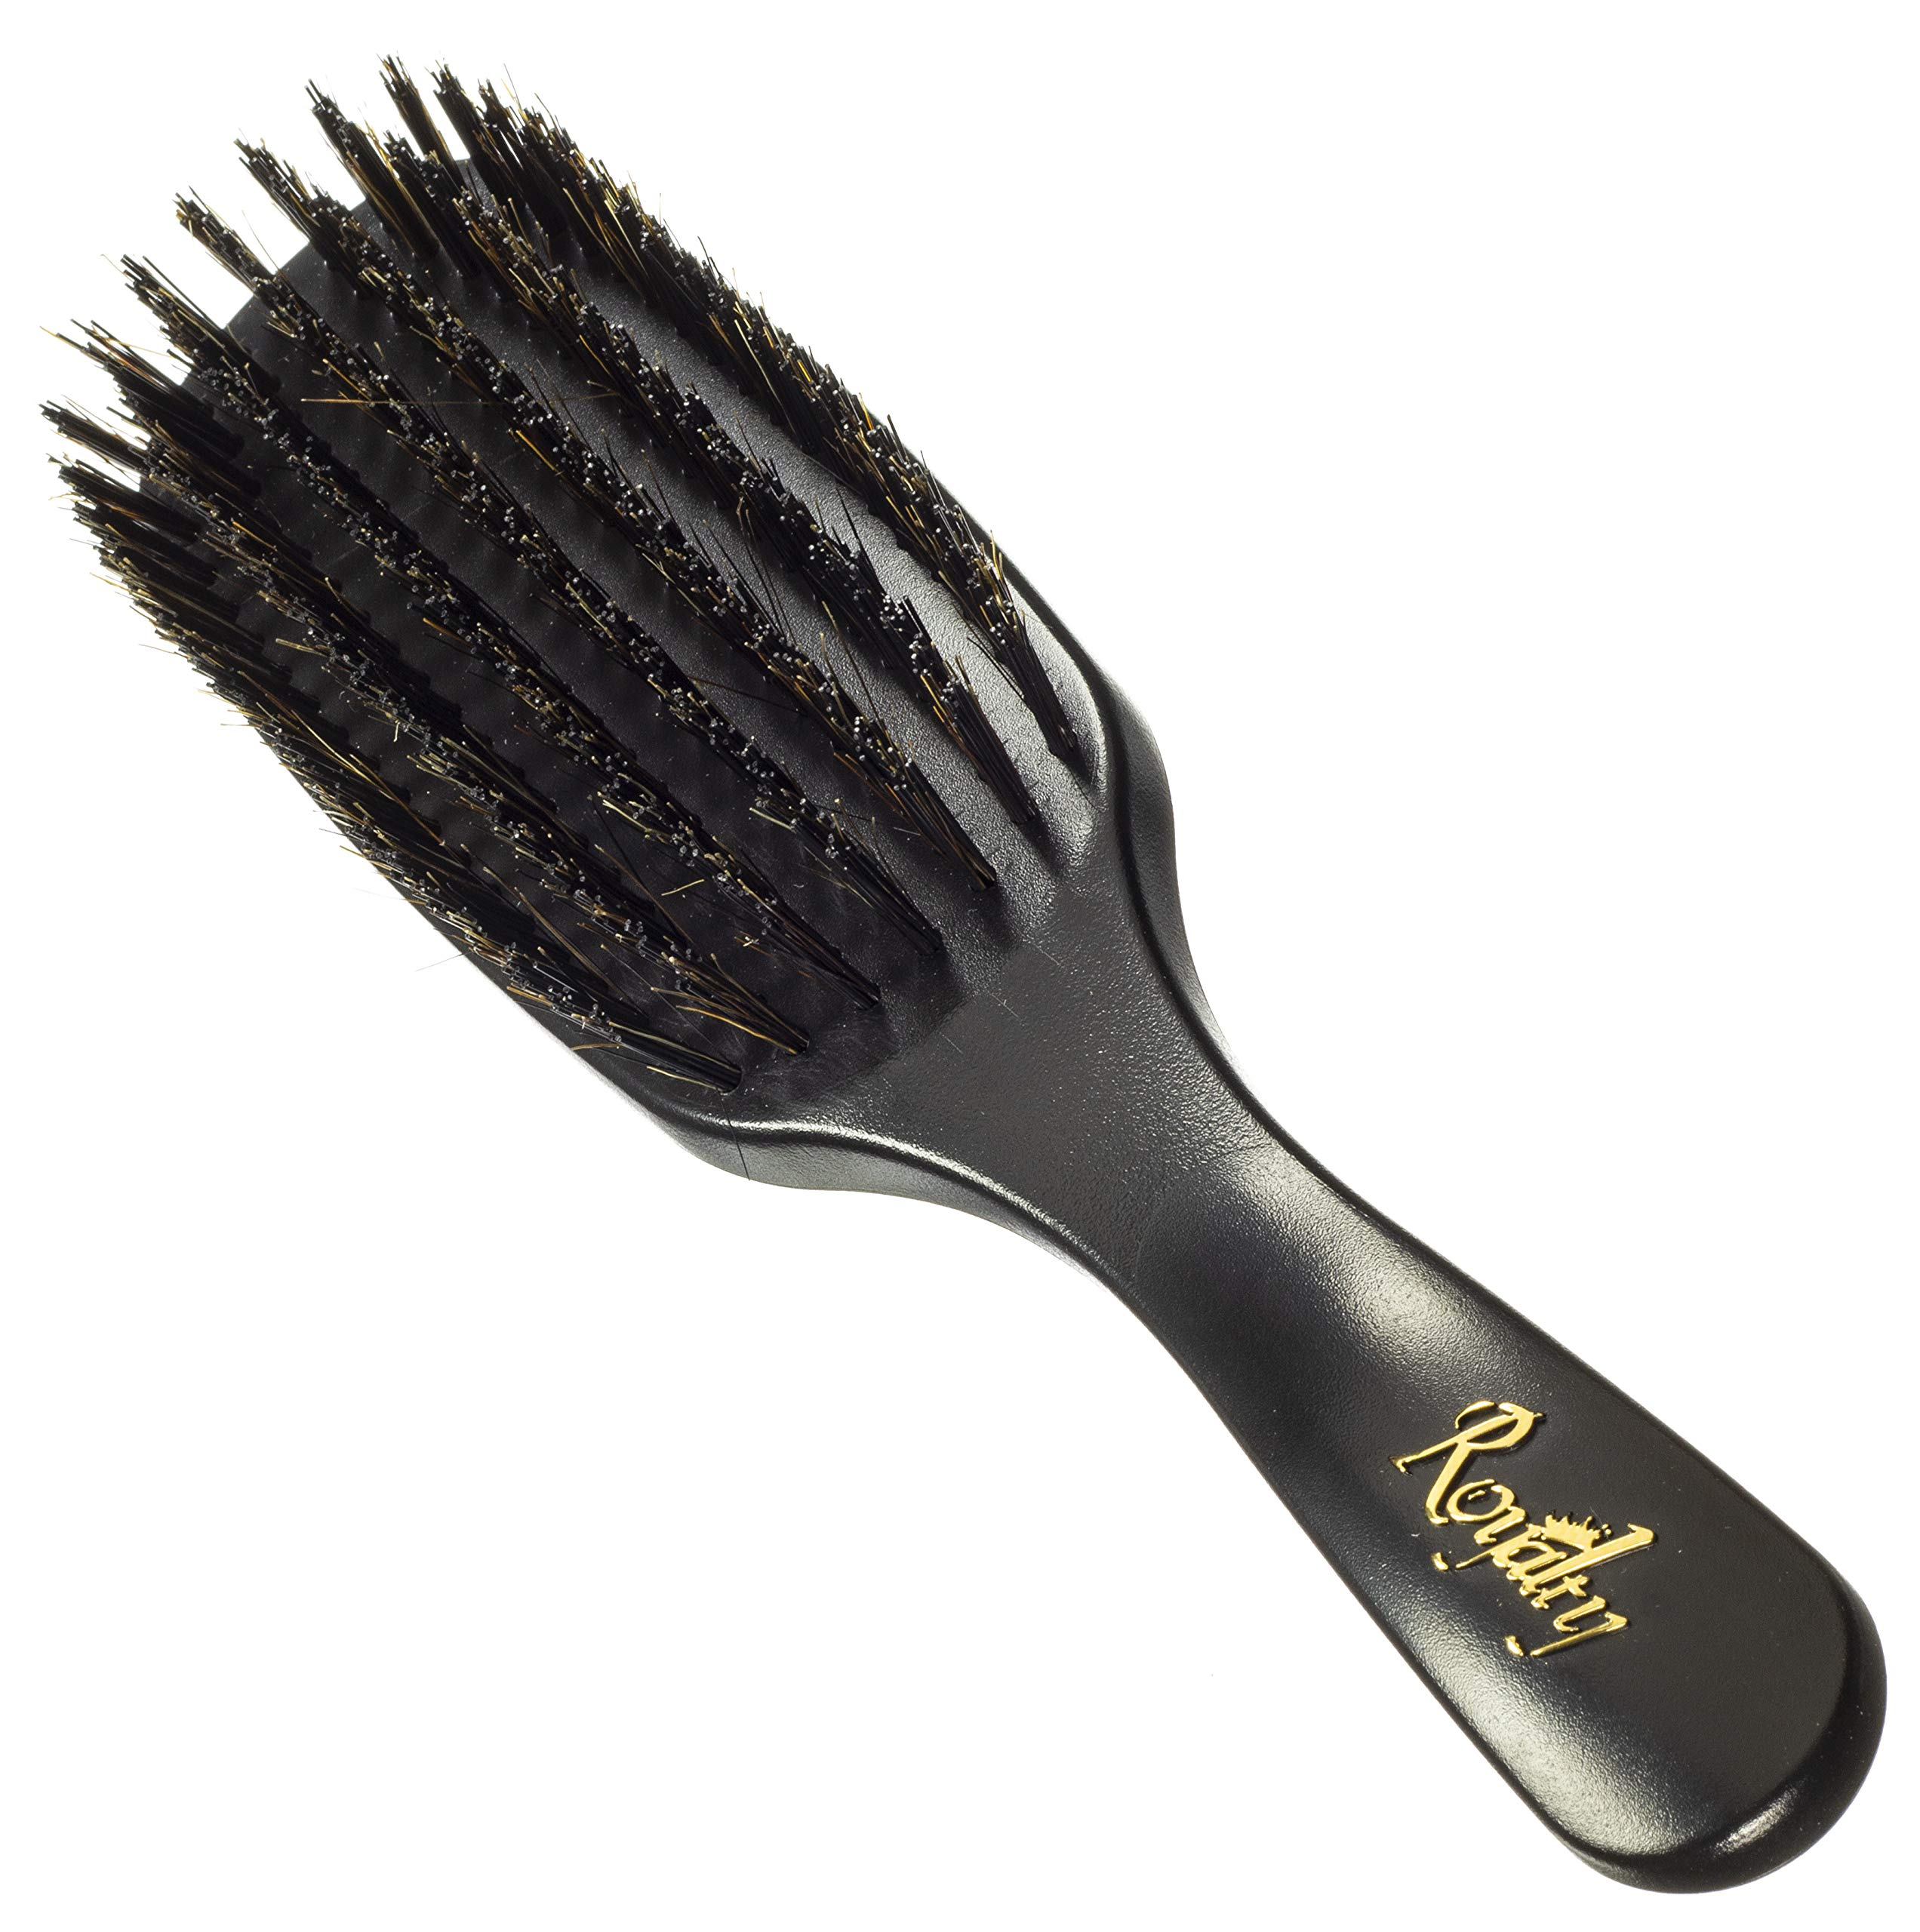 Royalty Shower Wave Brush #726- 7 row hard waves brush for wash and styles and shower brushing- Not for fresh cuts - For 360 waves